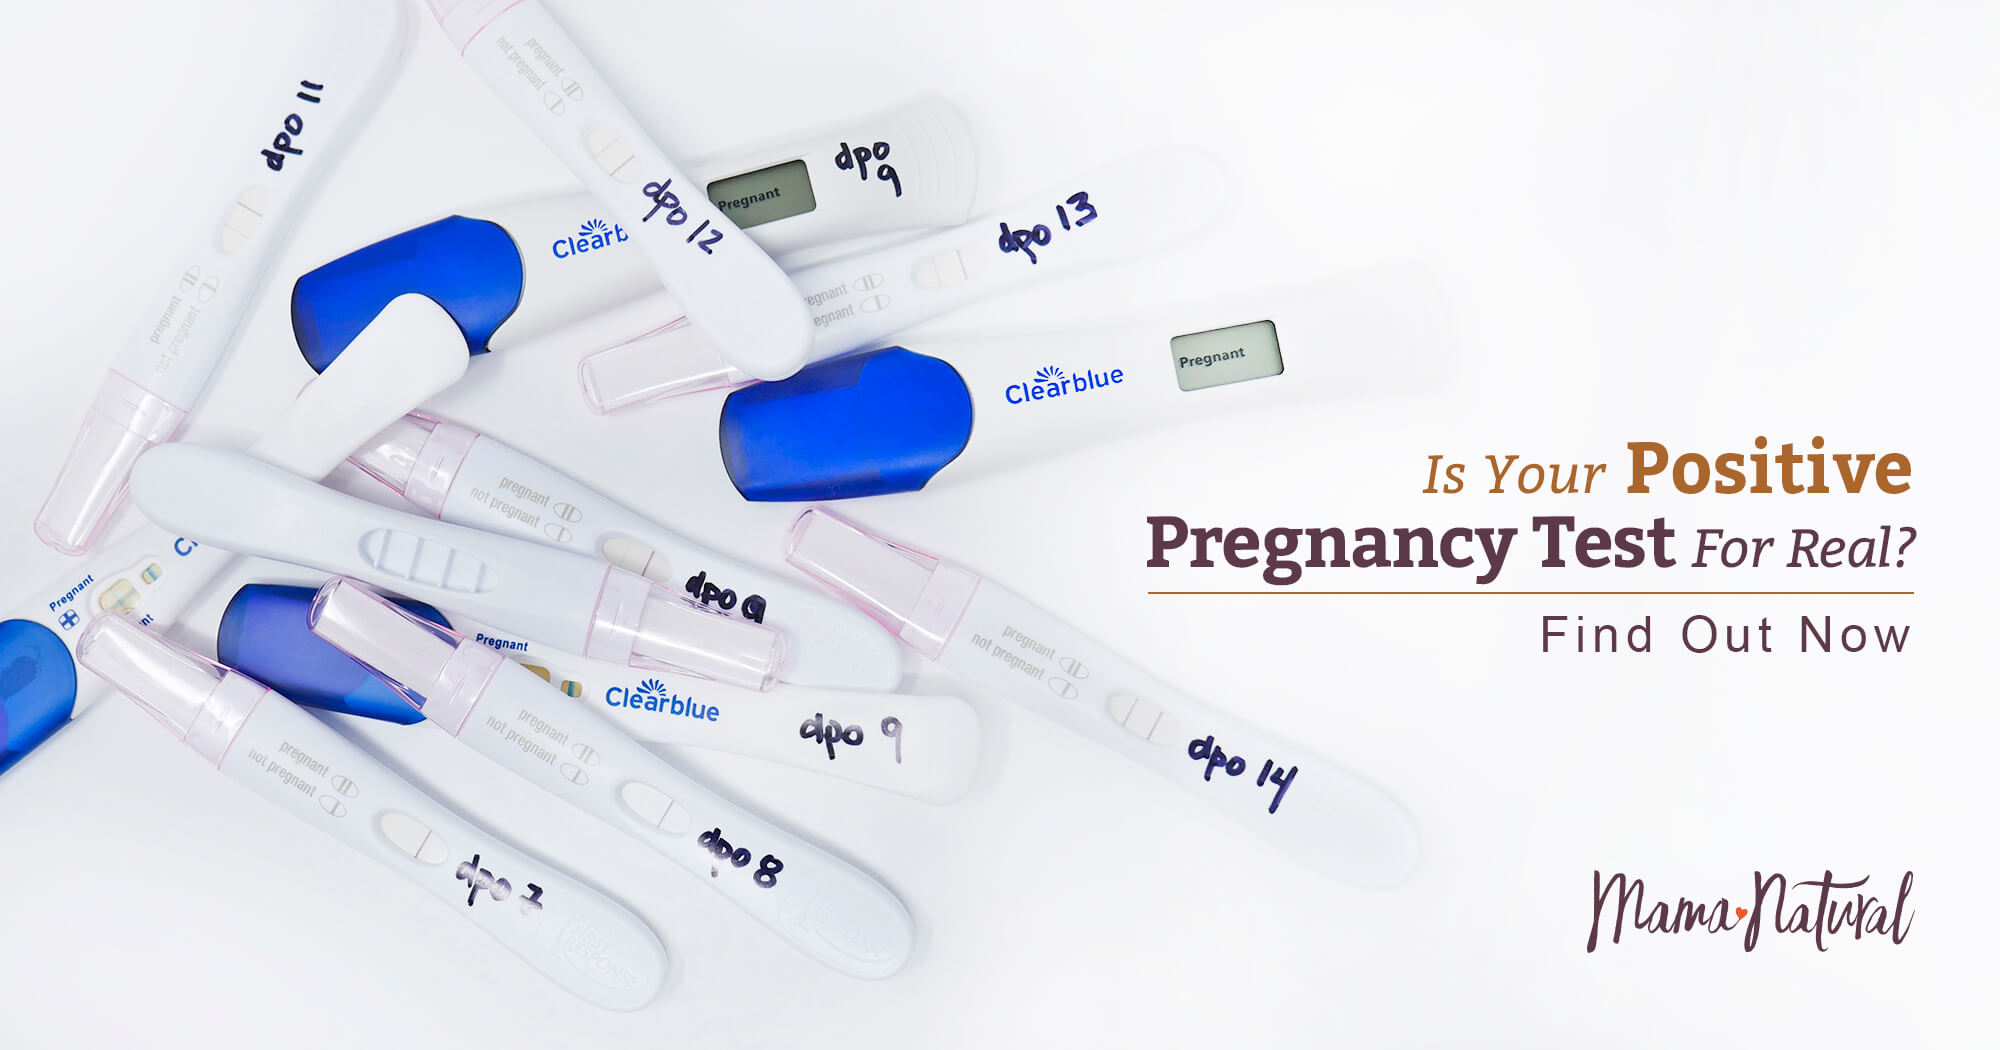 Is Your Positive Pregnancy Test For Real? Find Out Now